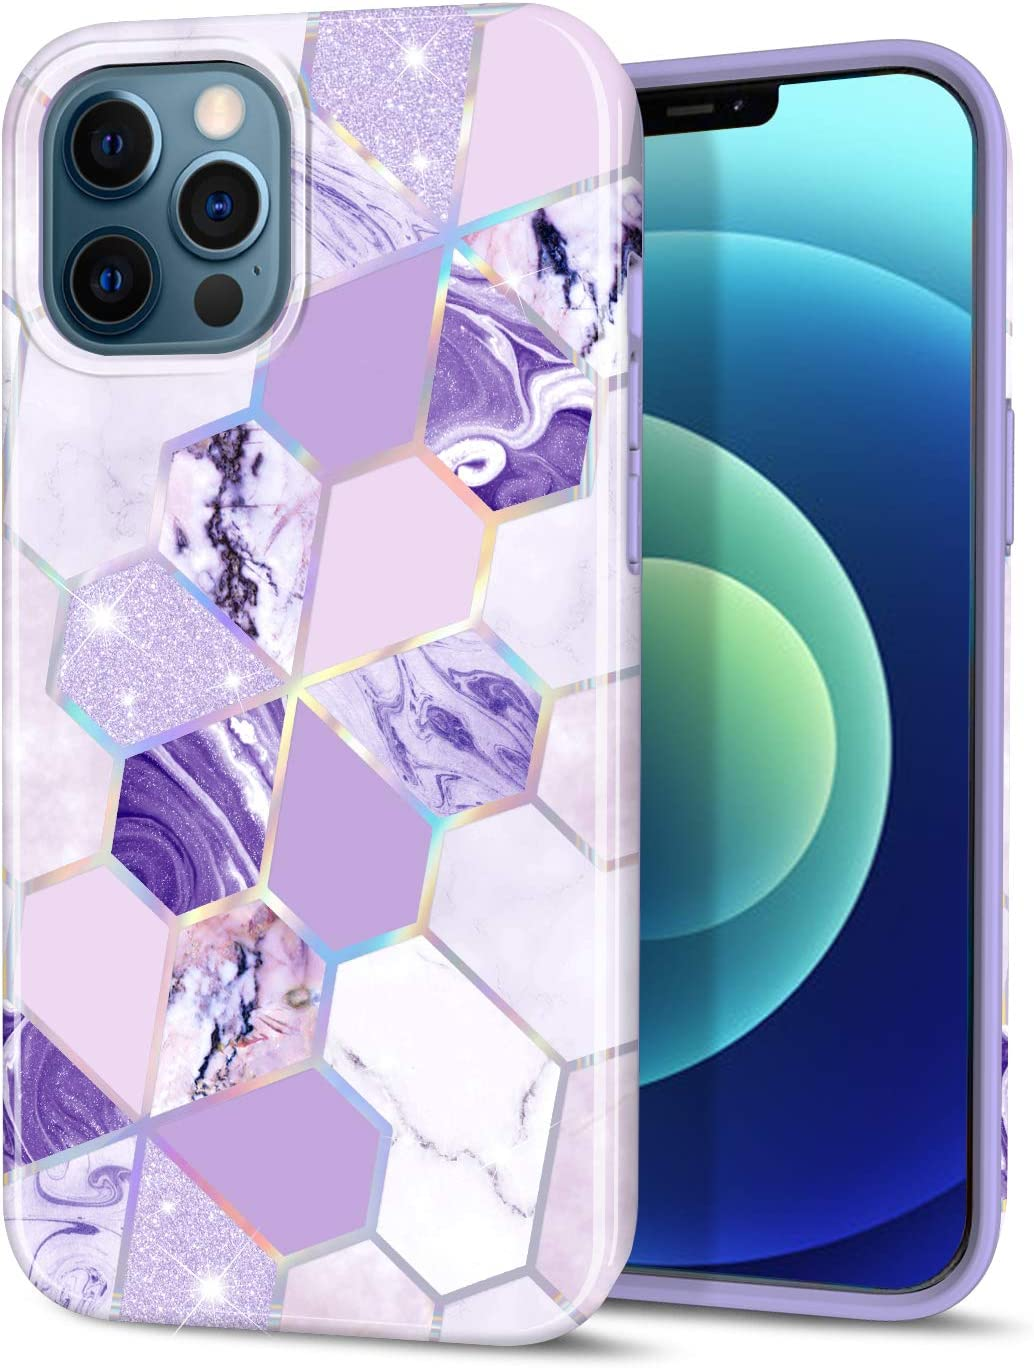 "CAOUME Compatible with iPhone 12 iPhone 12 Pro Case Purple Geometric Marble Design Sparkly Glitter Protective Stylish Slim Thin Cute Holographic Cases for Apple Phone 6.1"" 2020, Soft TPU Silicone"